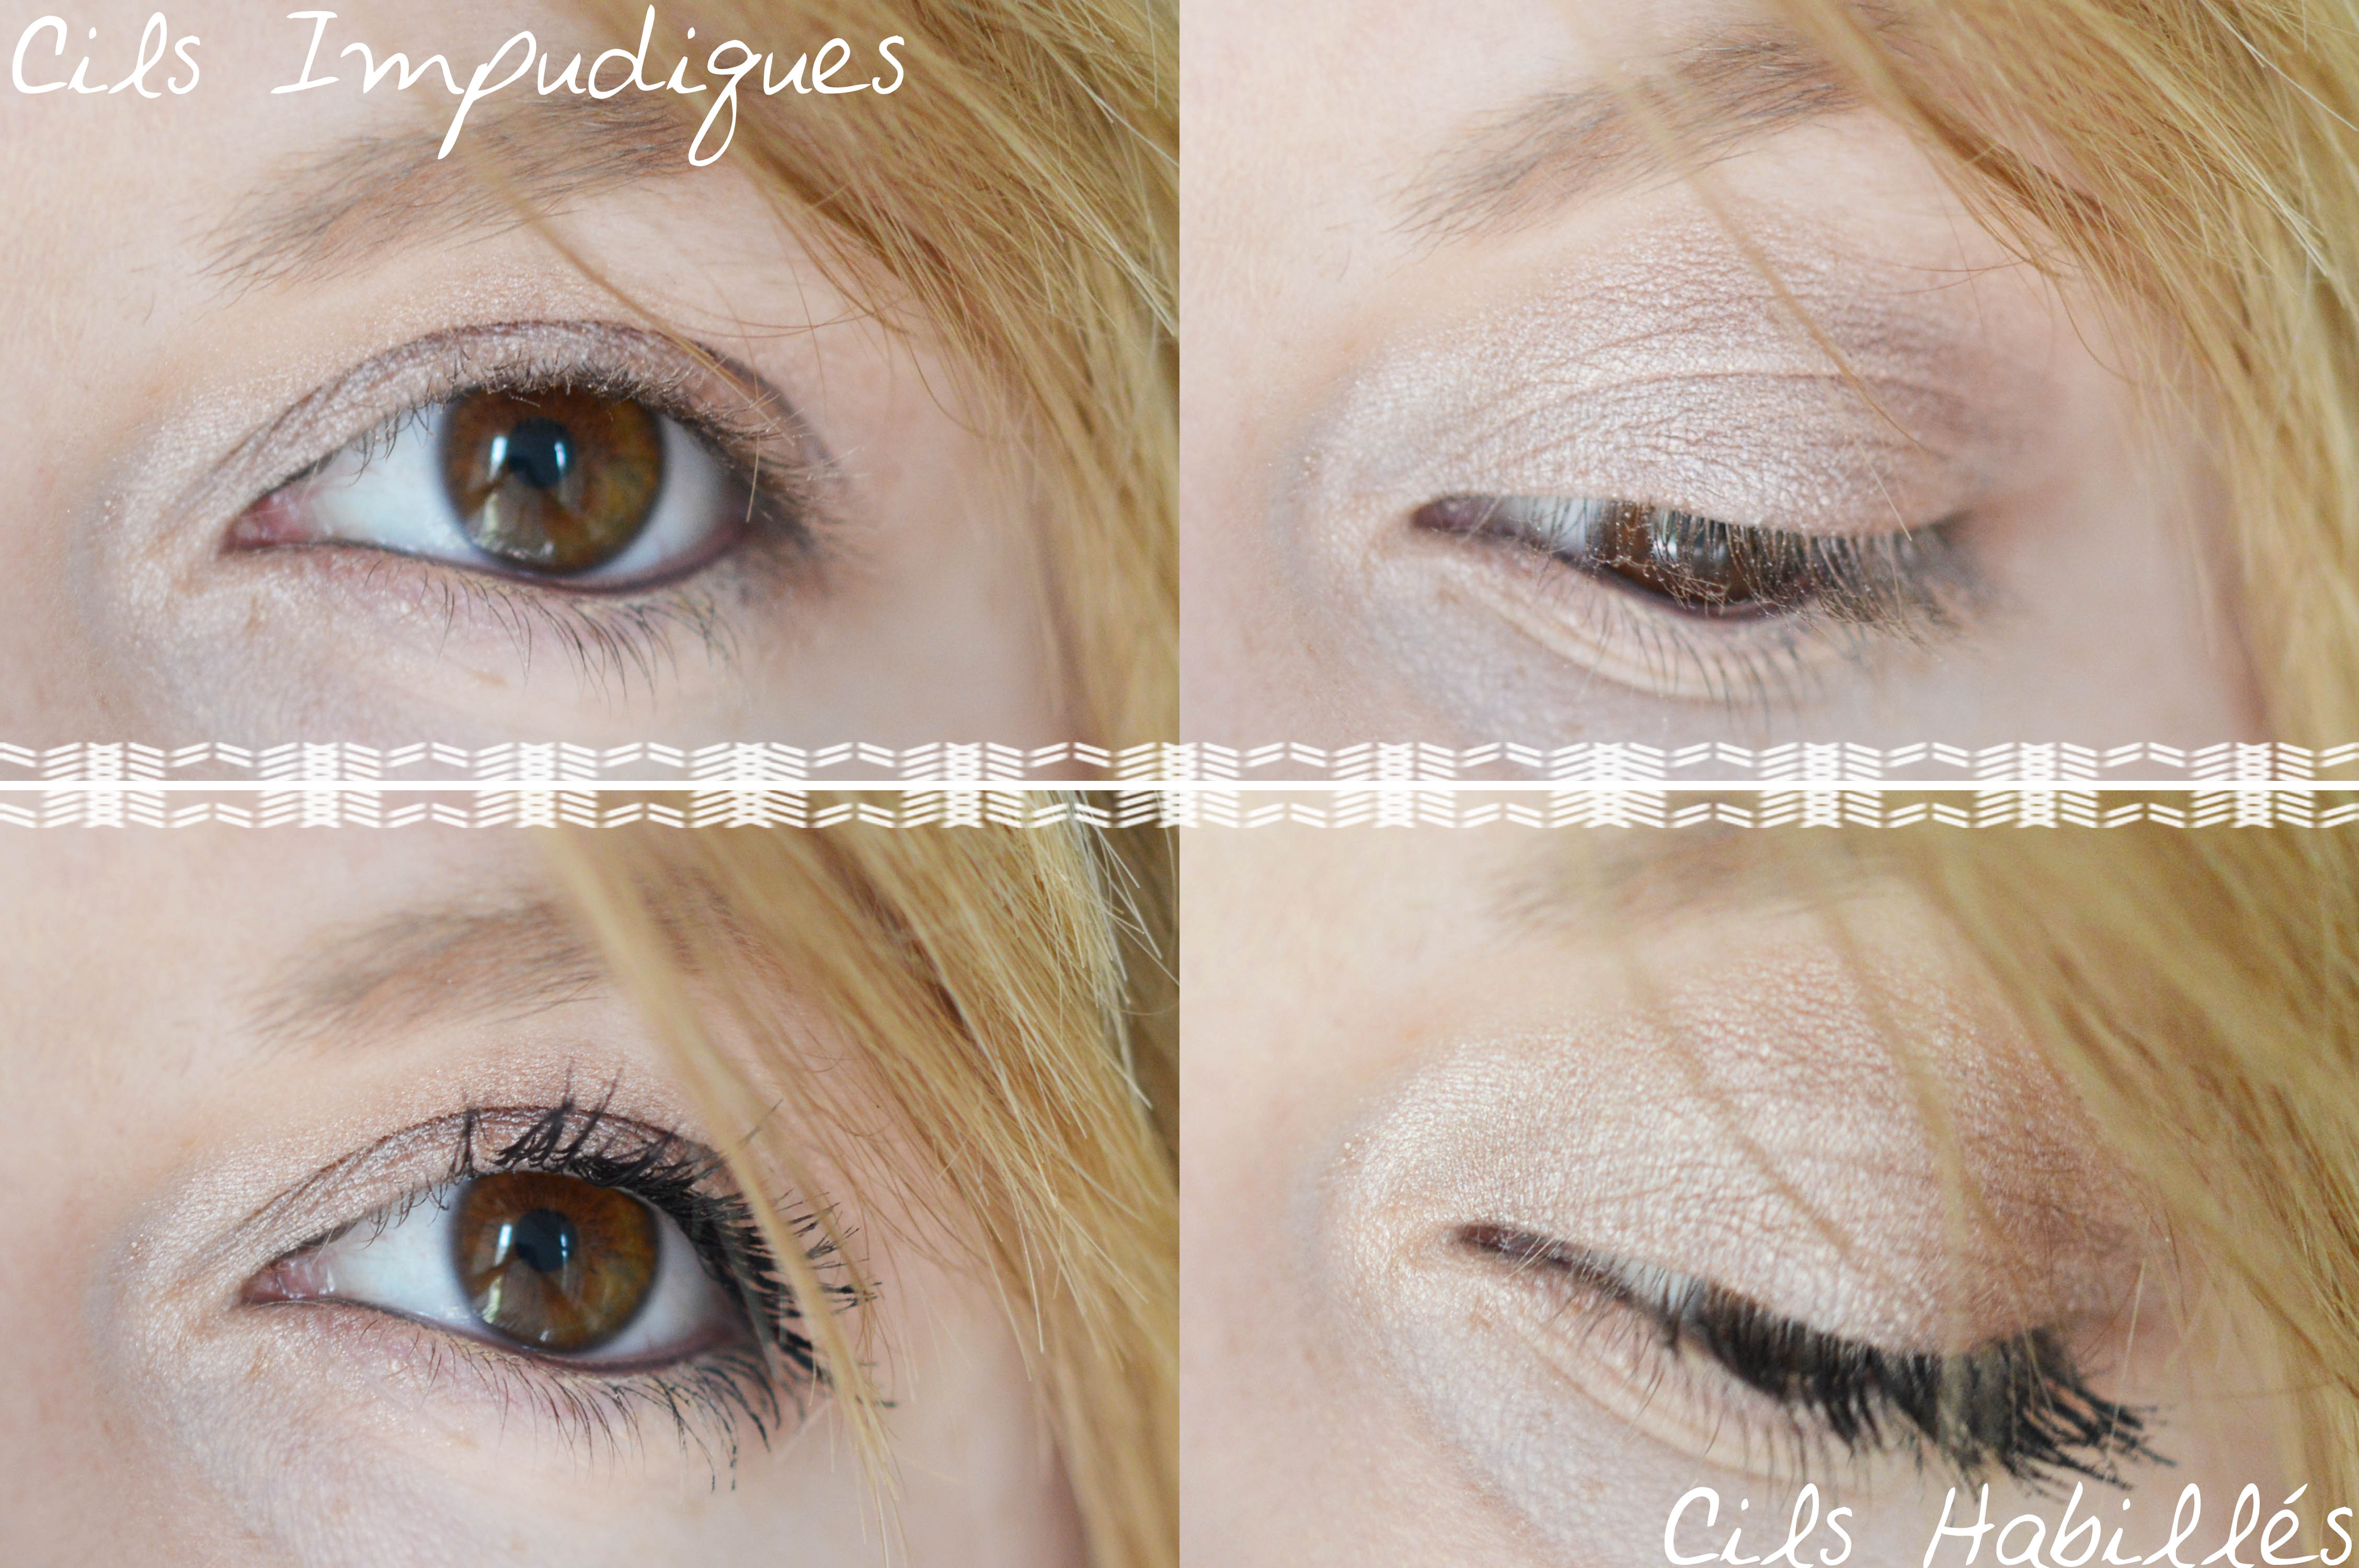 ALITTLEB_BLOG_BEAUTE_CATRICE_LA_MARQUE_QUIL_FAUT_ENVIER_A_NOS_COPINES_FRONTALIERES_EPISODE_2_MASCARA_BABYDOLL_BLACK